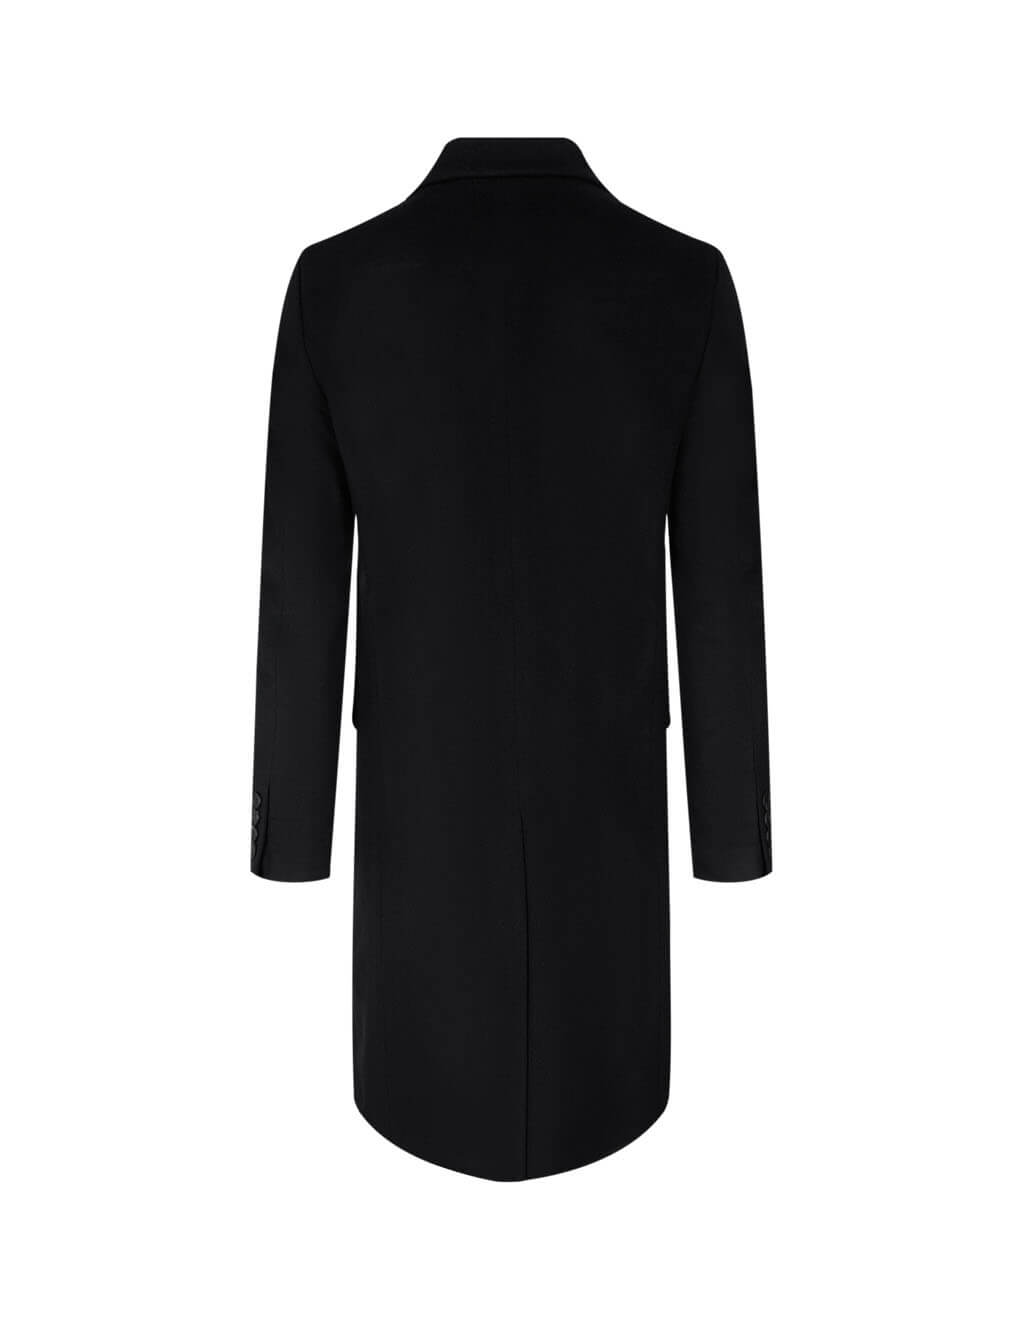 Givenchy Men's Black G Pin Coat BMC04U12Y0-001